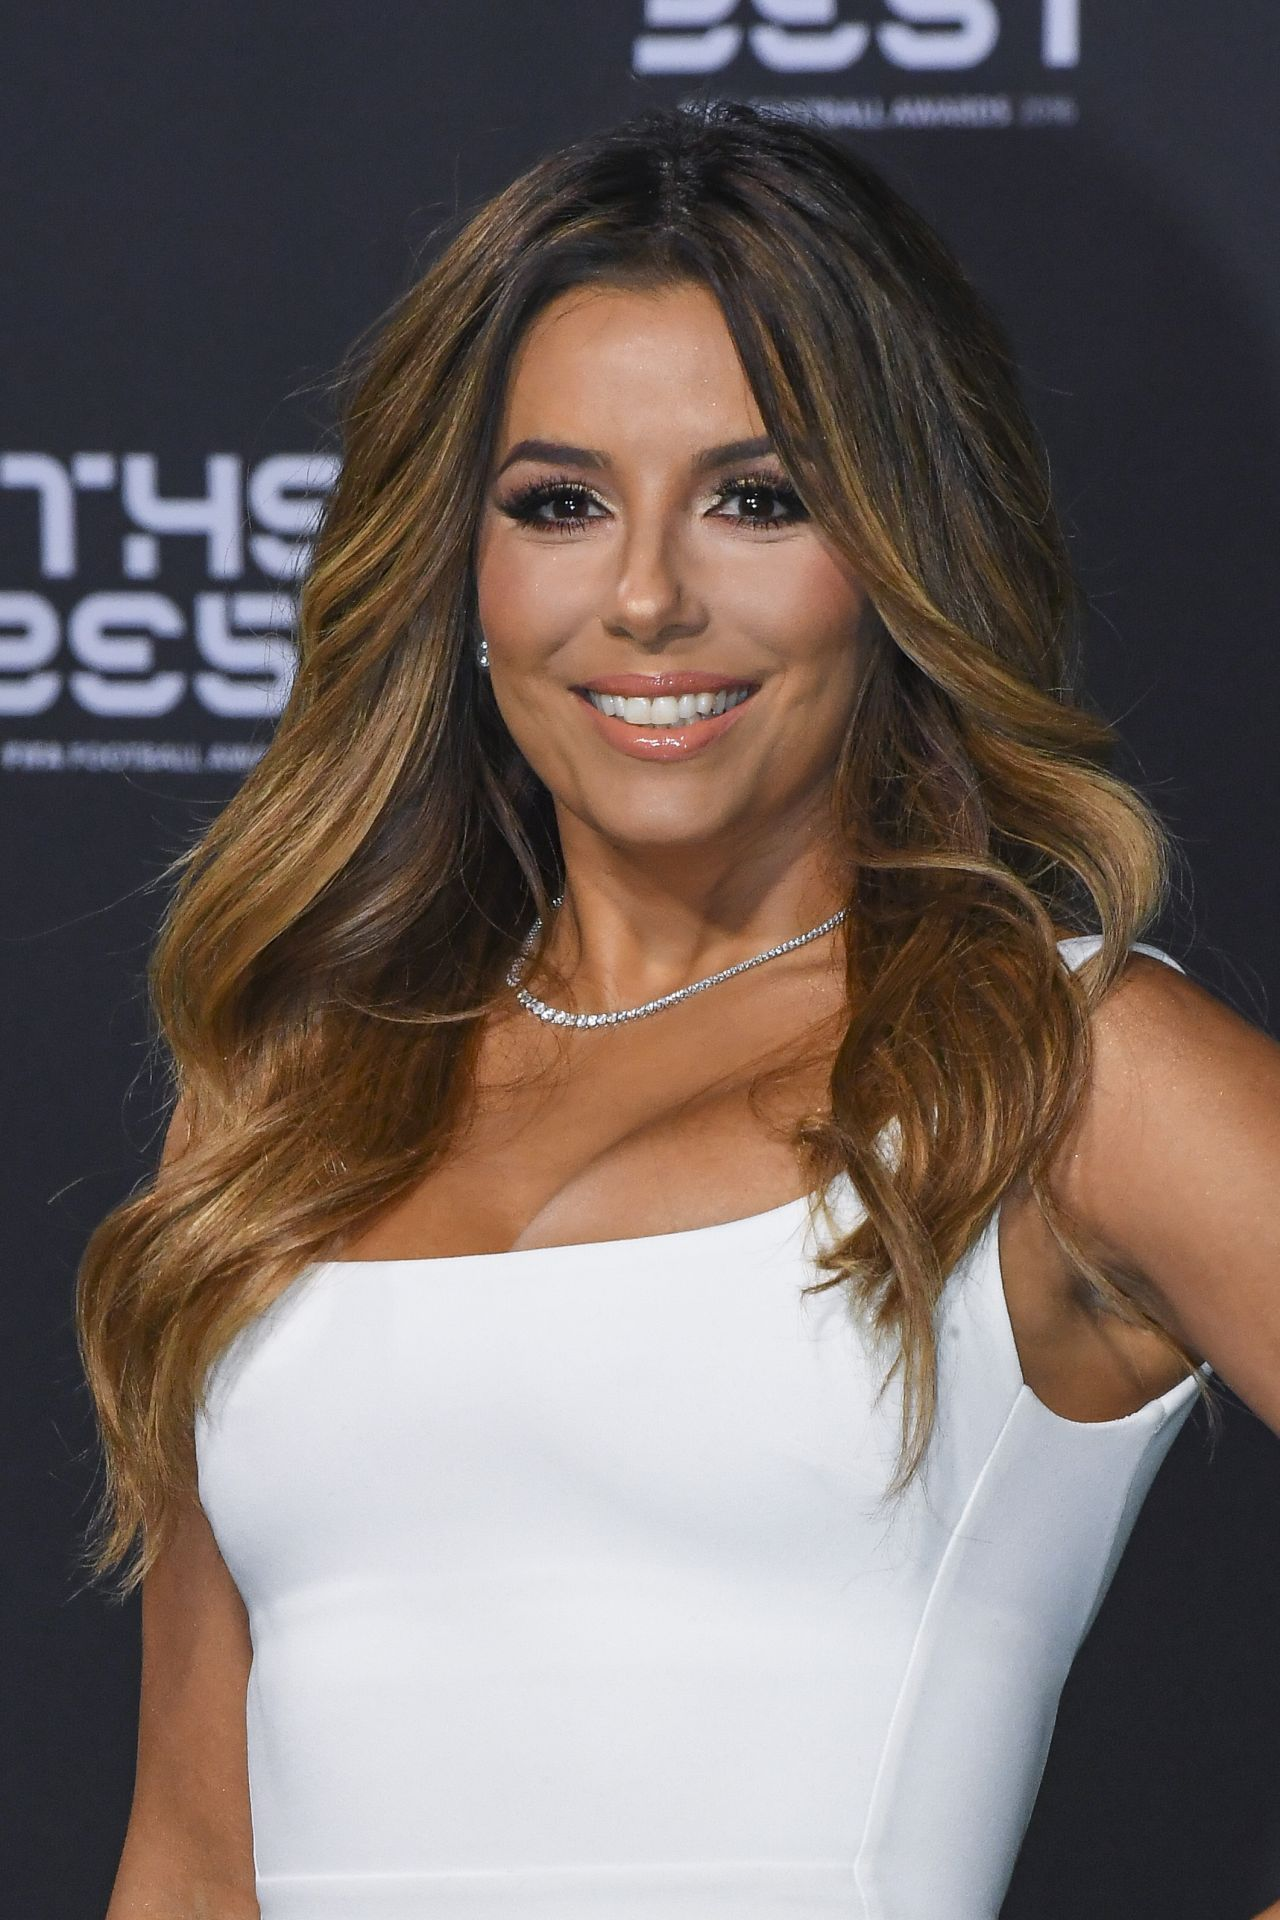 42-year-old Eva Longoria was wearing a sexy black suit for a photo shoot 02.08.2017 7